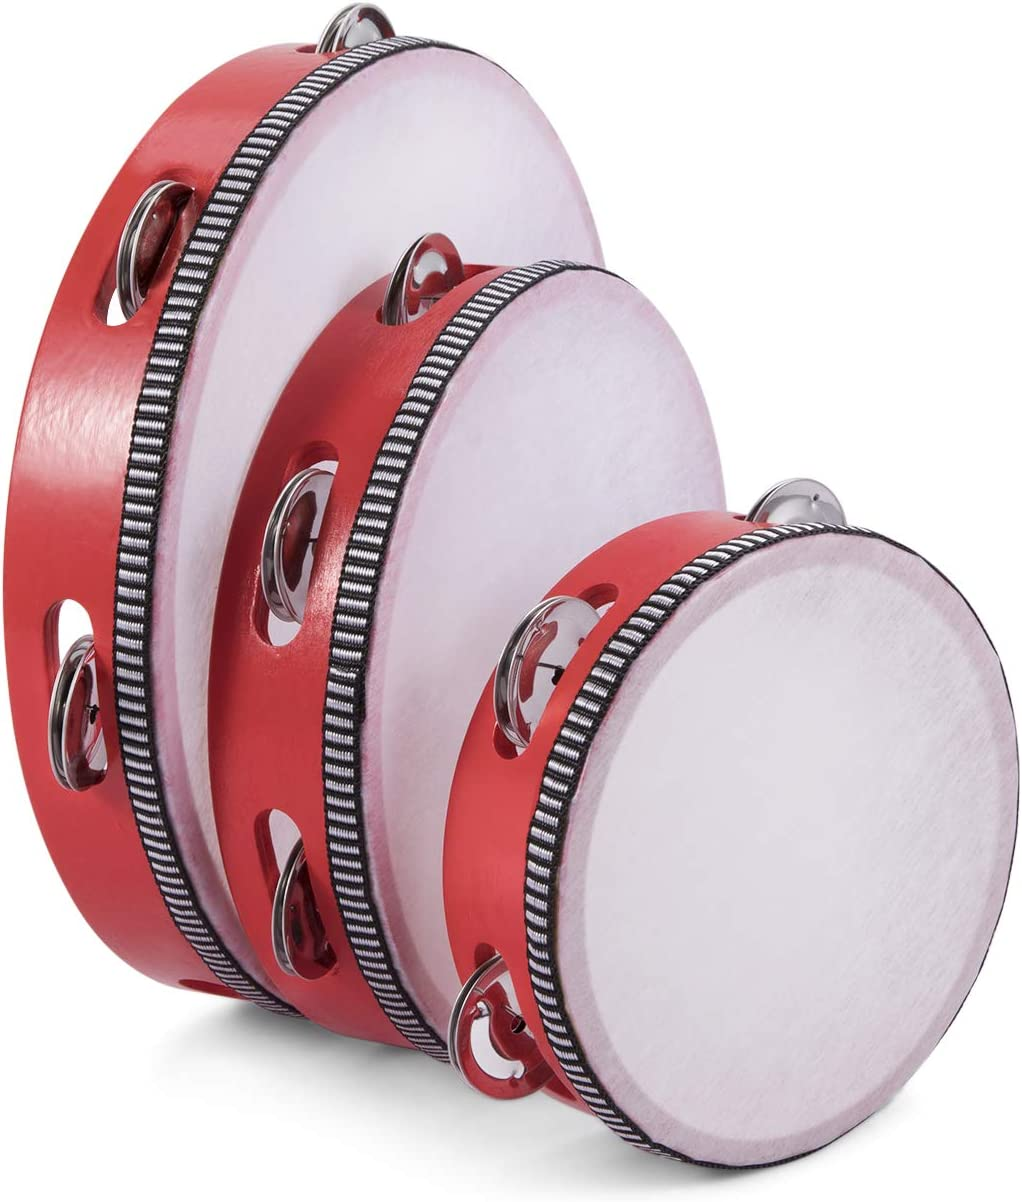 Flexzion 3 Pack Large-scale sale Wood Handheld Tambourines - 6 Limited price sale 10 Inch 8 + Set